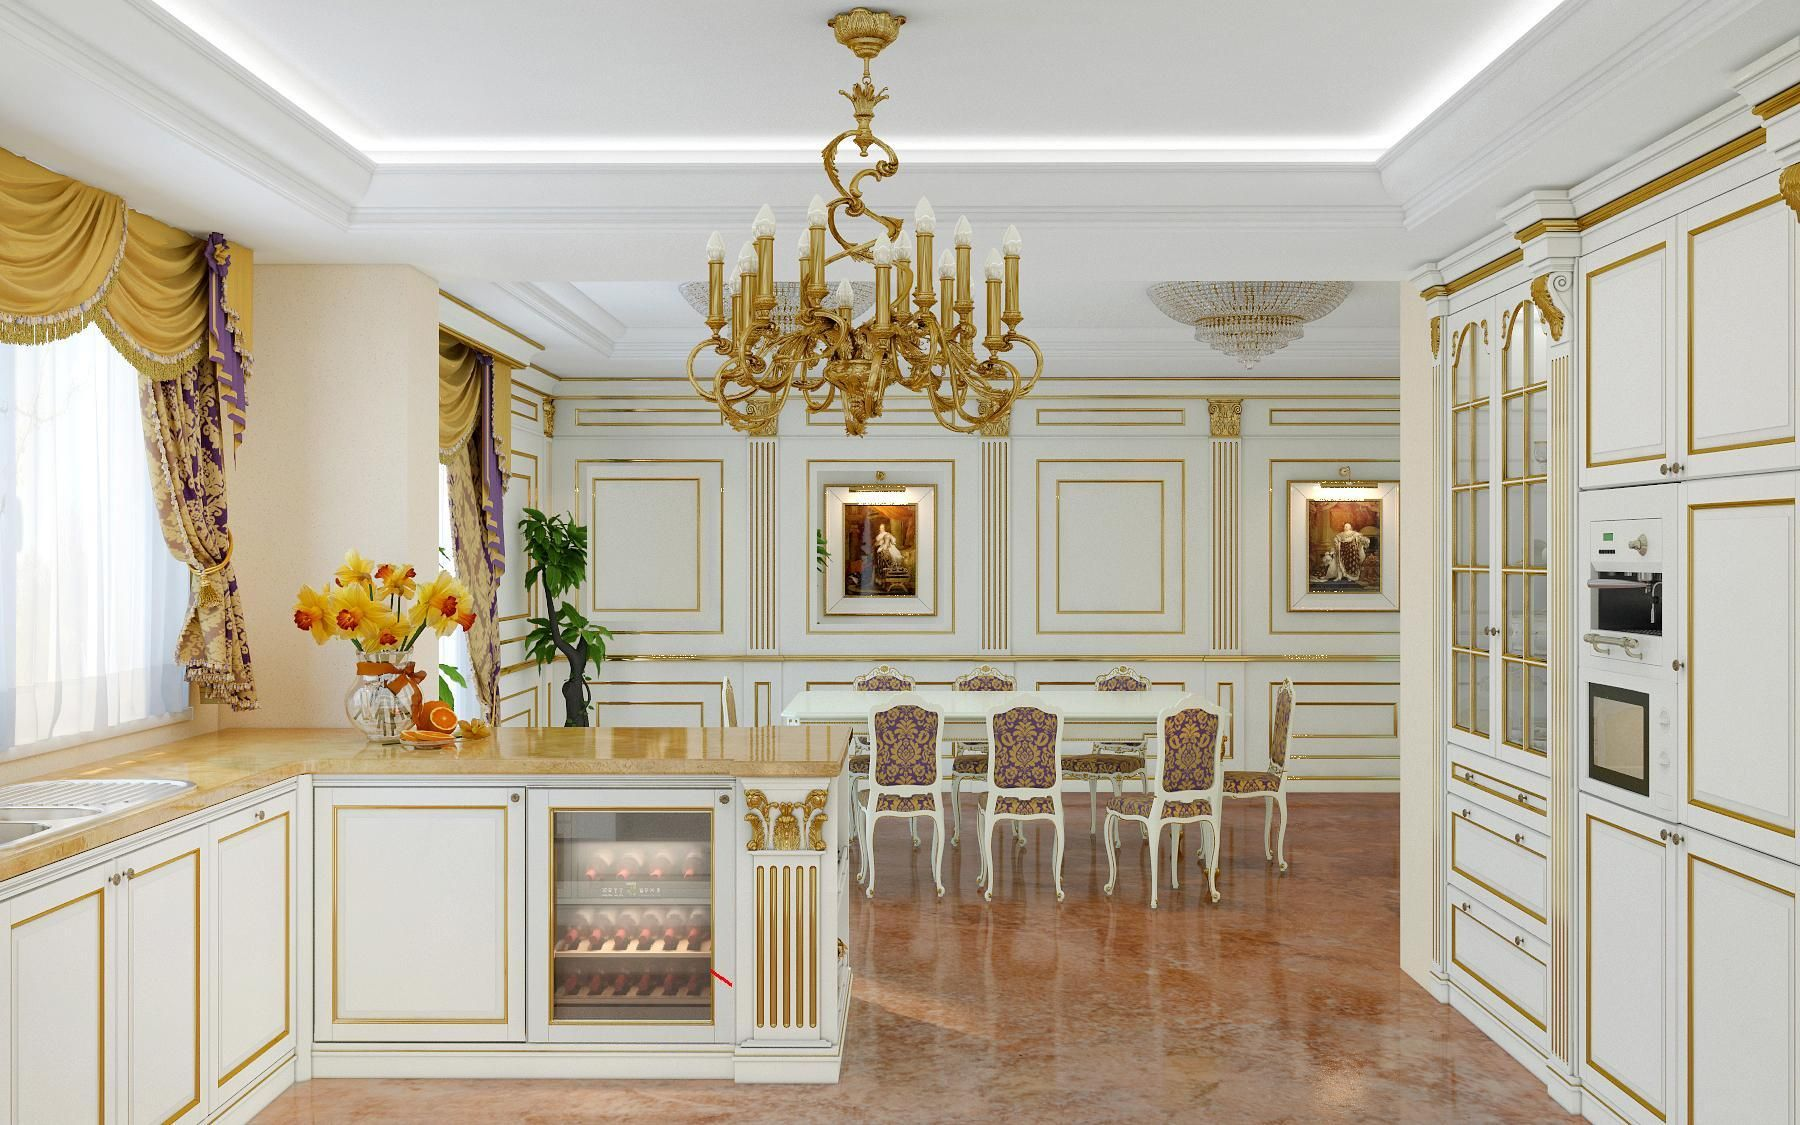 Luxury kitchen made in Italy Legacy | Luxury kitchens ...